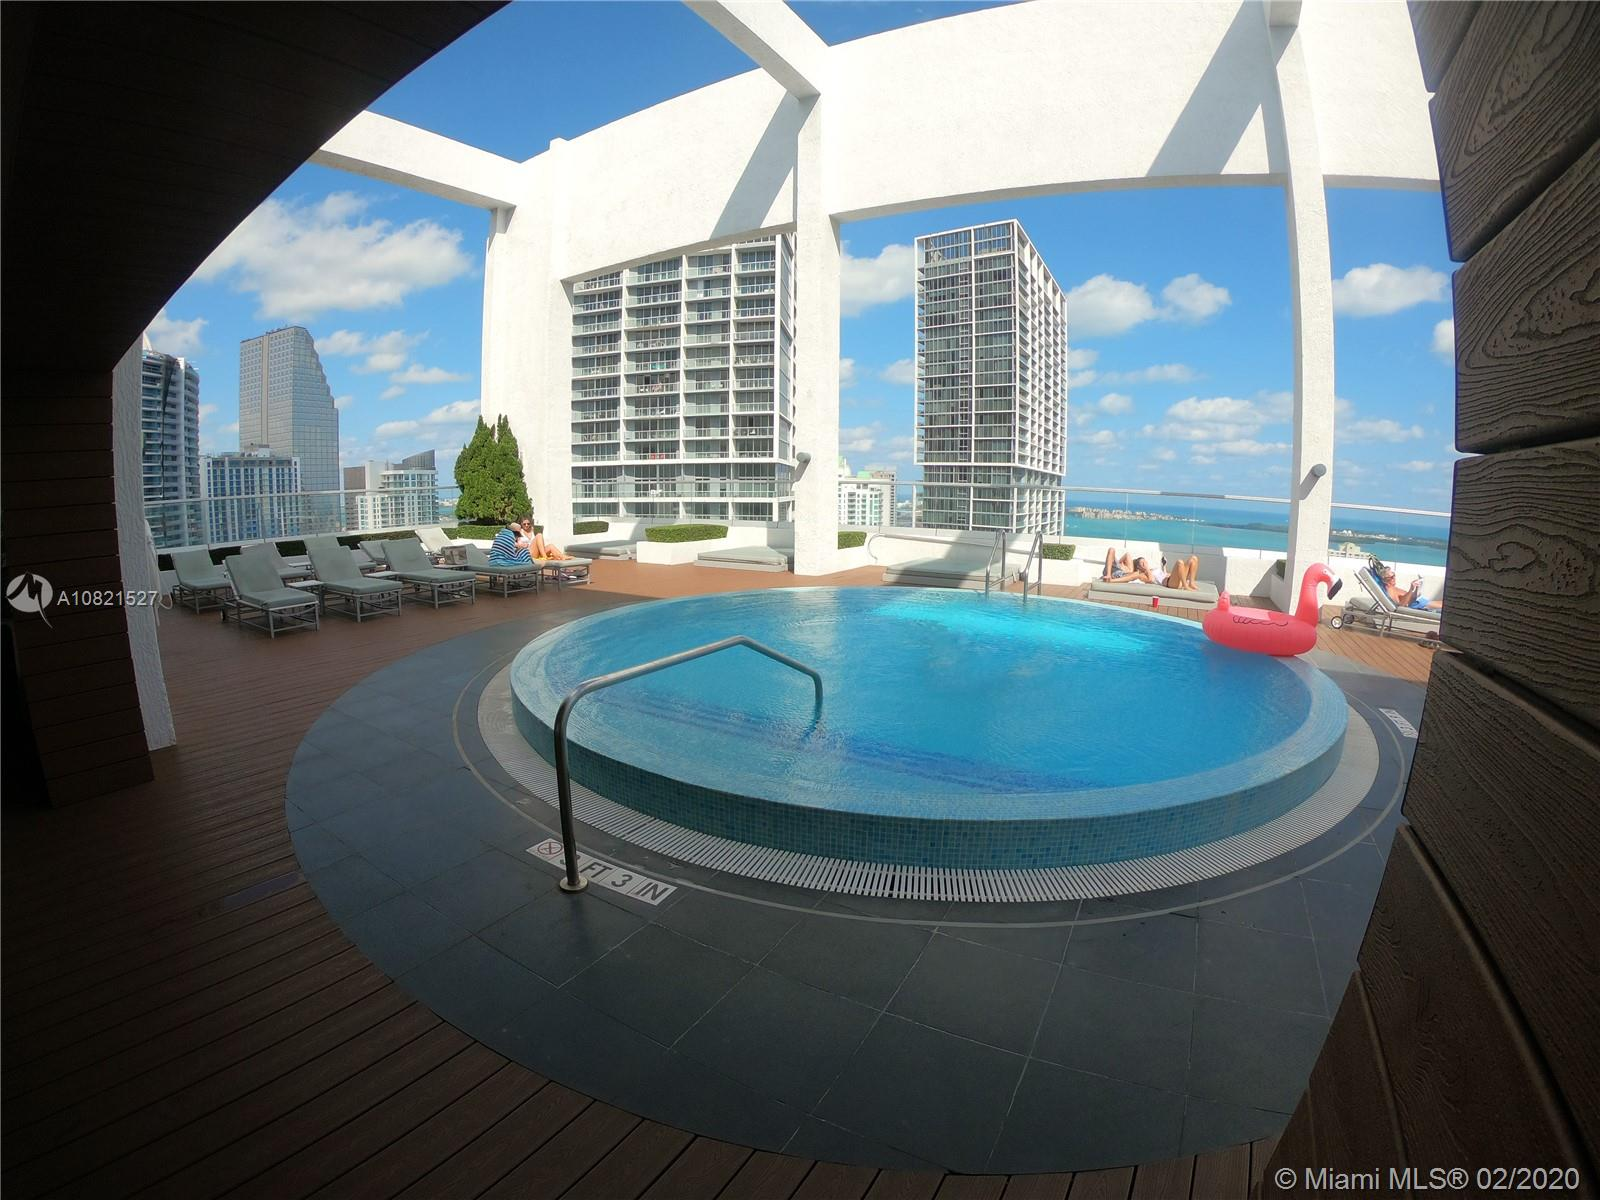 Beautiful and spacious 2 Bed 2 bath furnished with upgraded new wood laminate floors all throughout. European kitchen with stainless steel appliances and quartz countertop. Great full service building with plenty of amenities including a rooftop pool and more. Best location on Brickell Ave walking distance to Downtown and Brickell Citicentre.